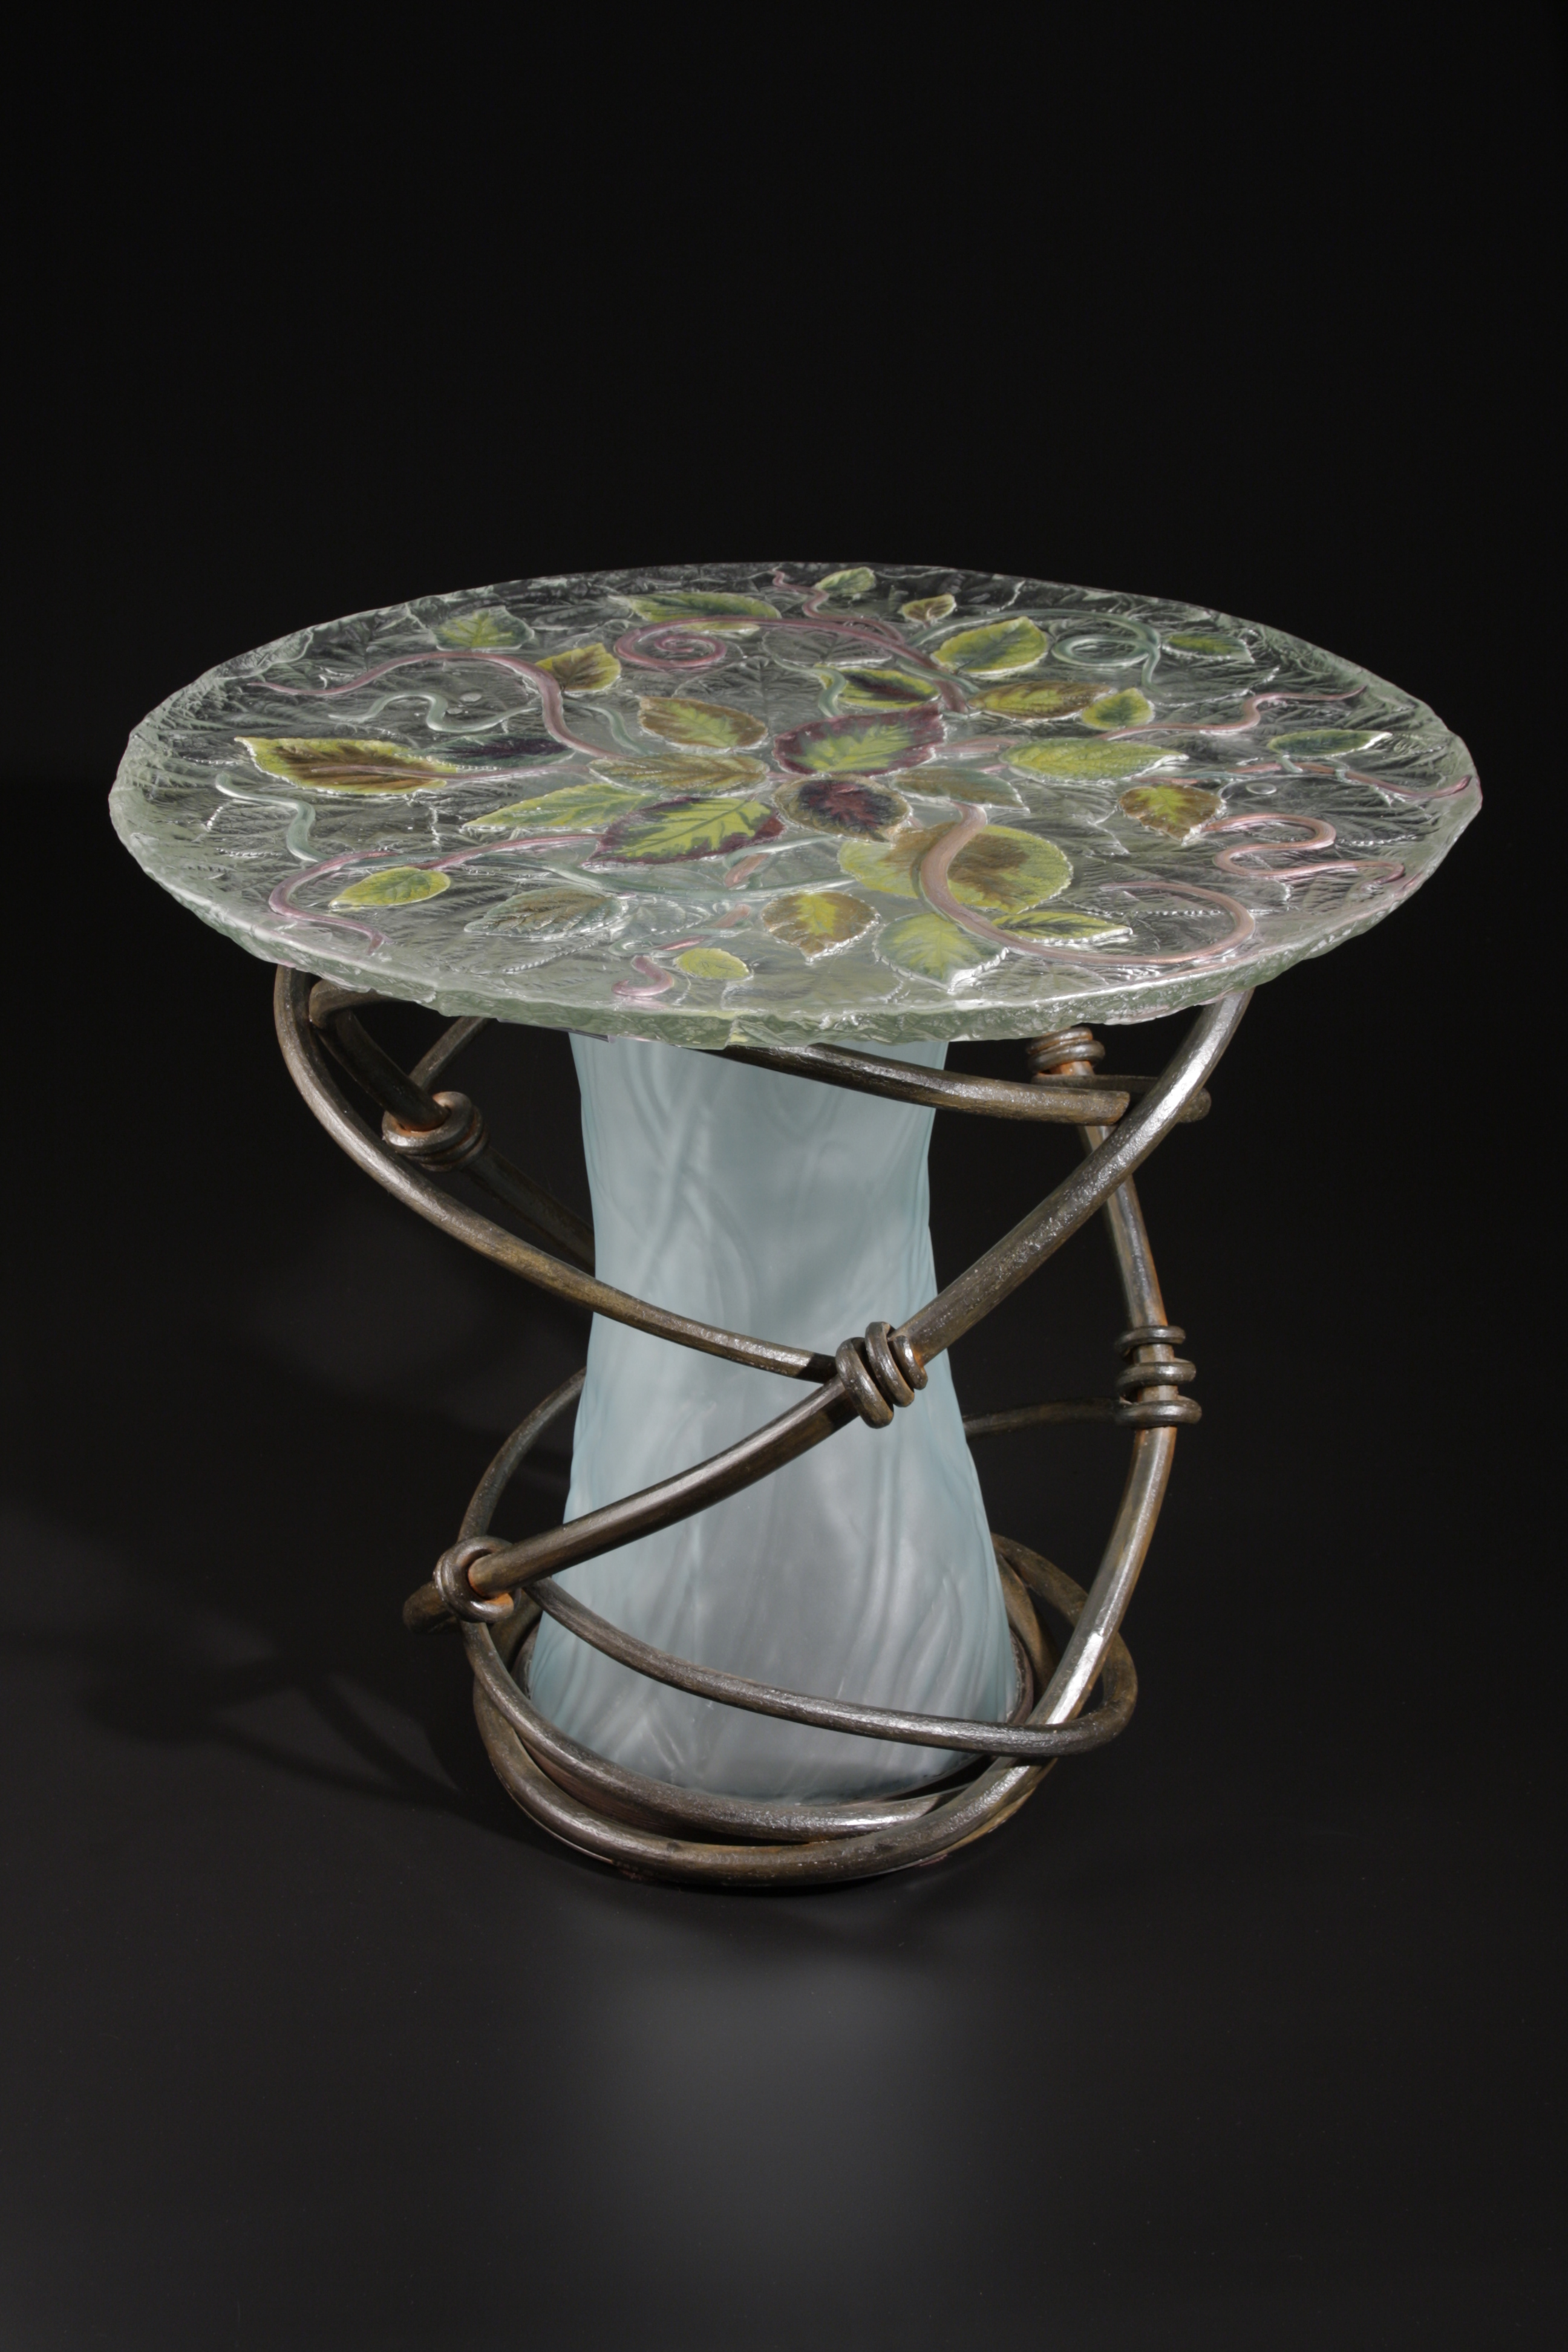 Table with cast glass top with lustered leaves. Glass center surrounded by forged steel vines.